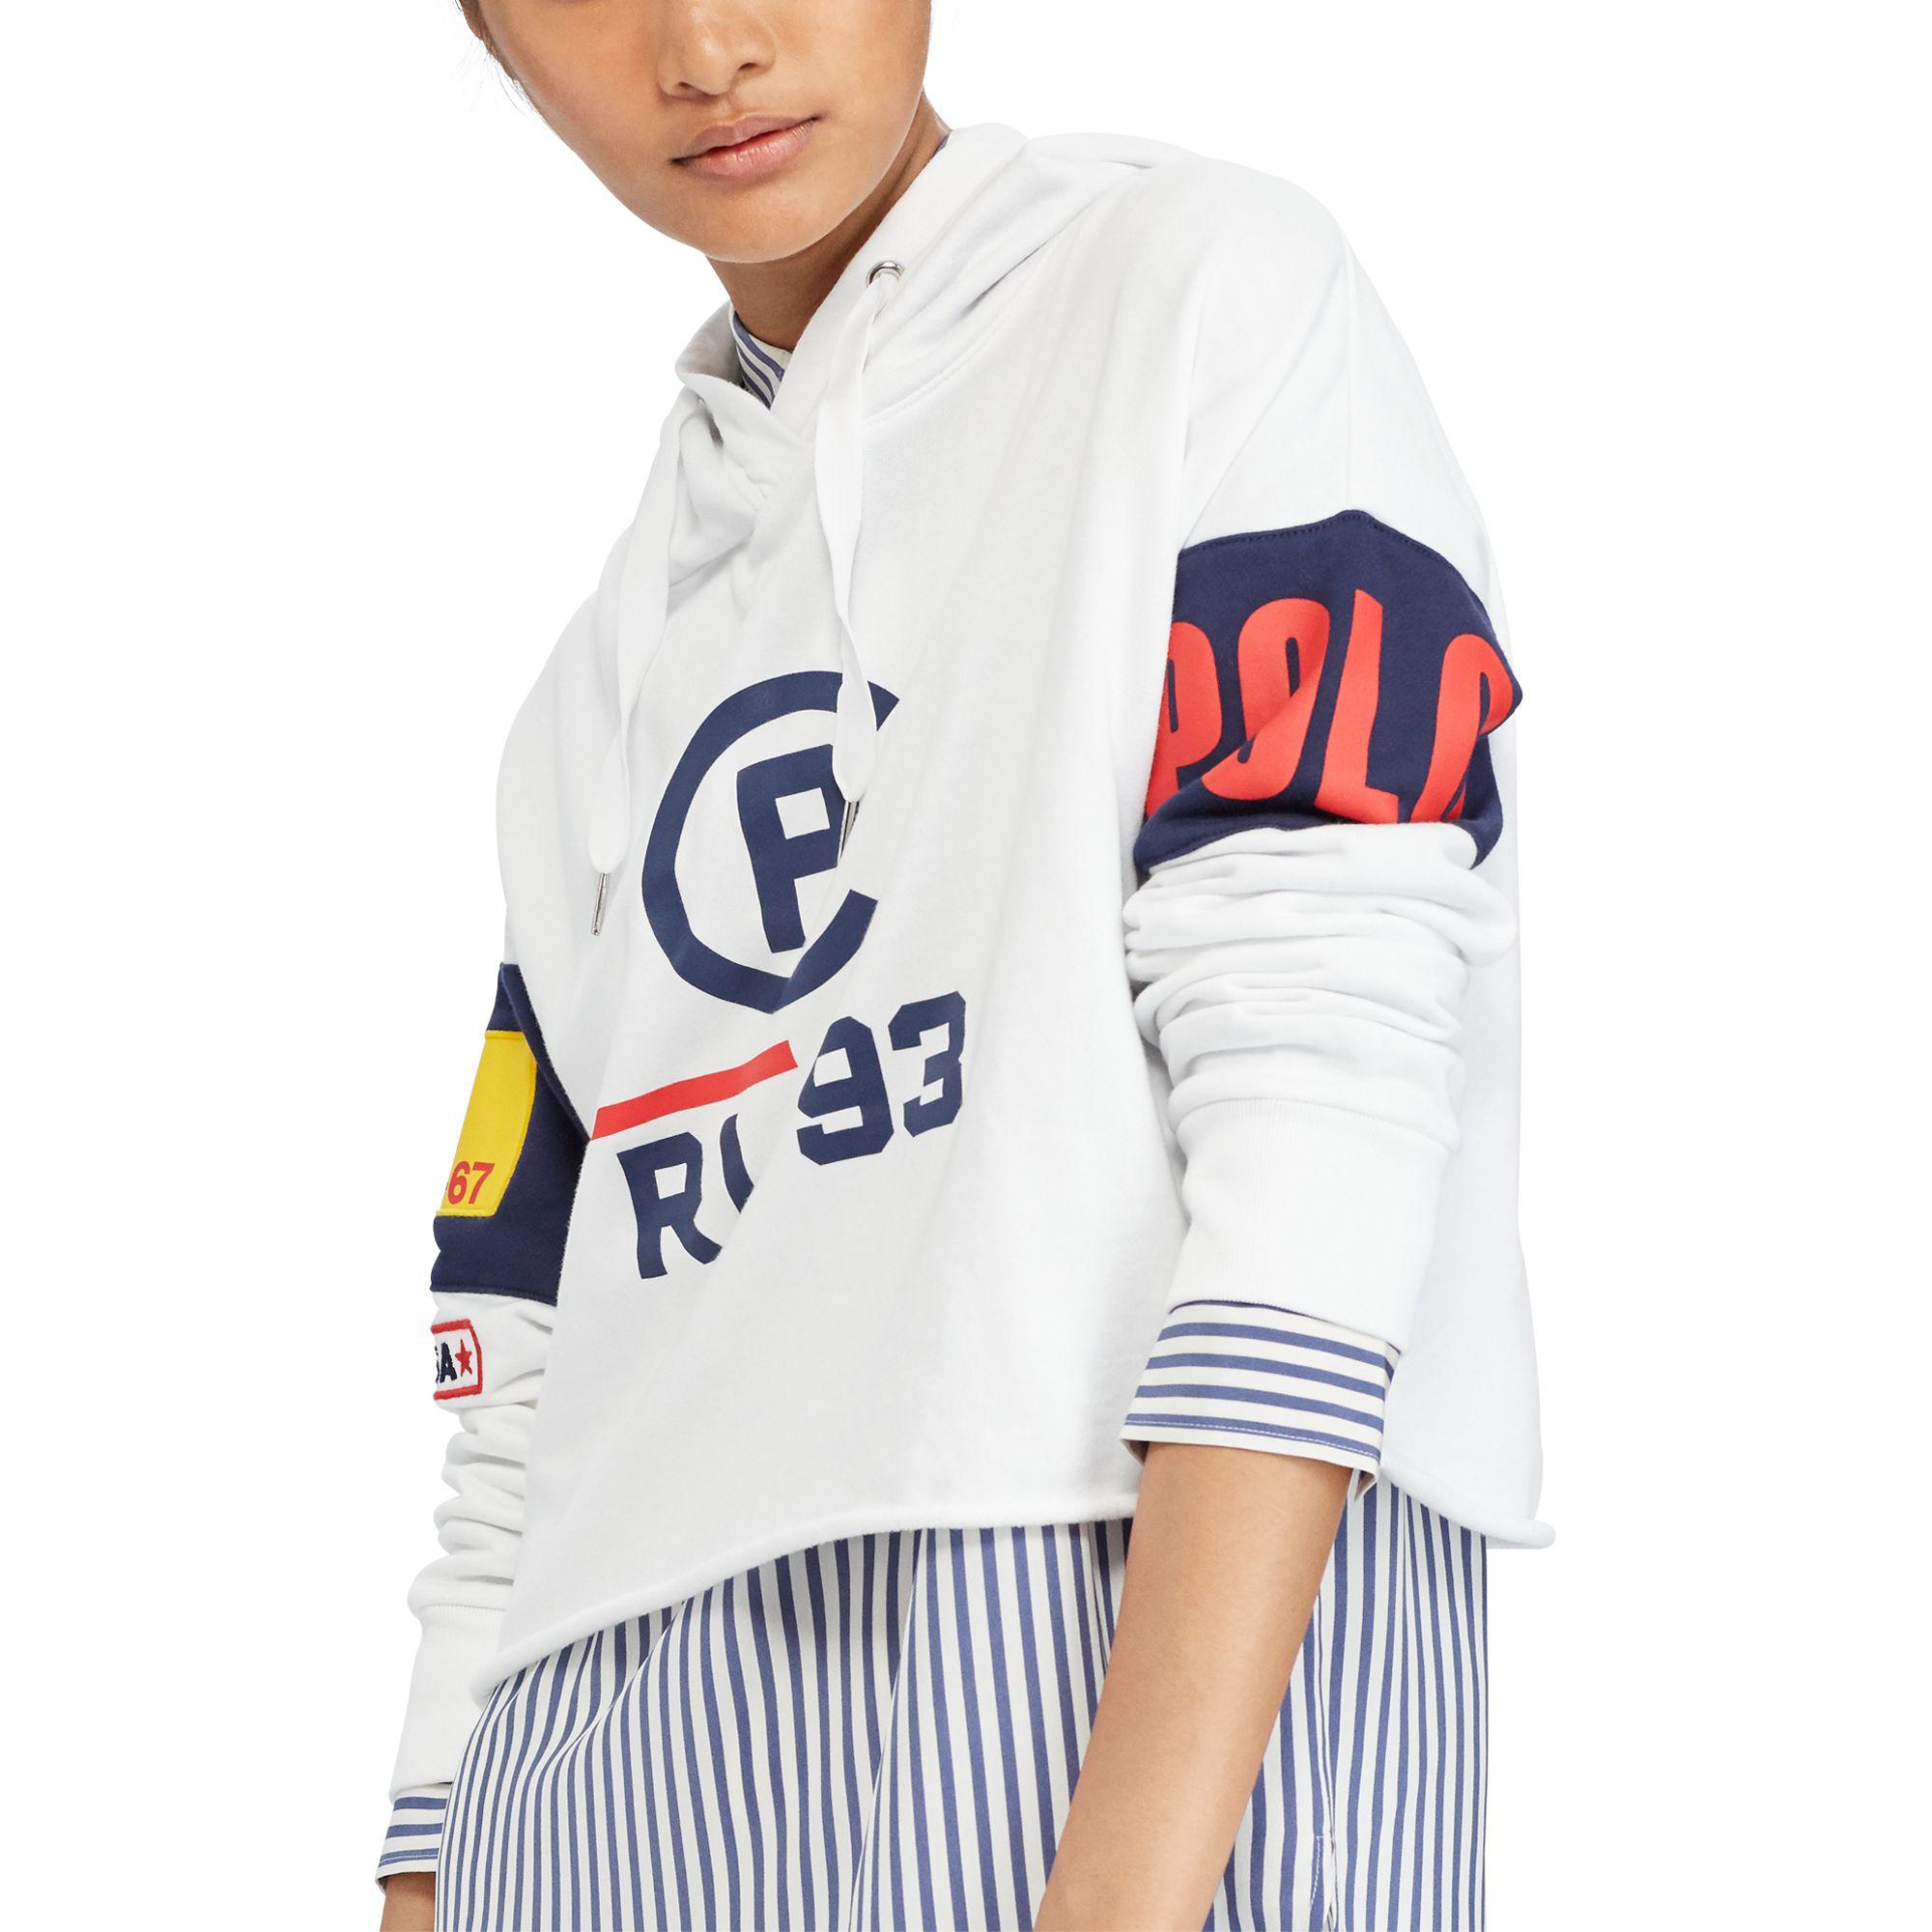 9e3c63be Polo Ralph Lauren Cp-93 Cropped Fleece Hoodie in White - Lyst